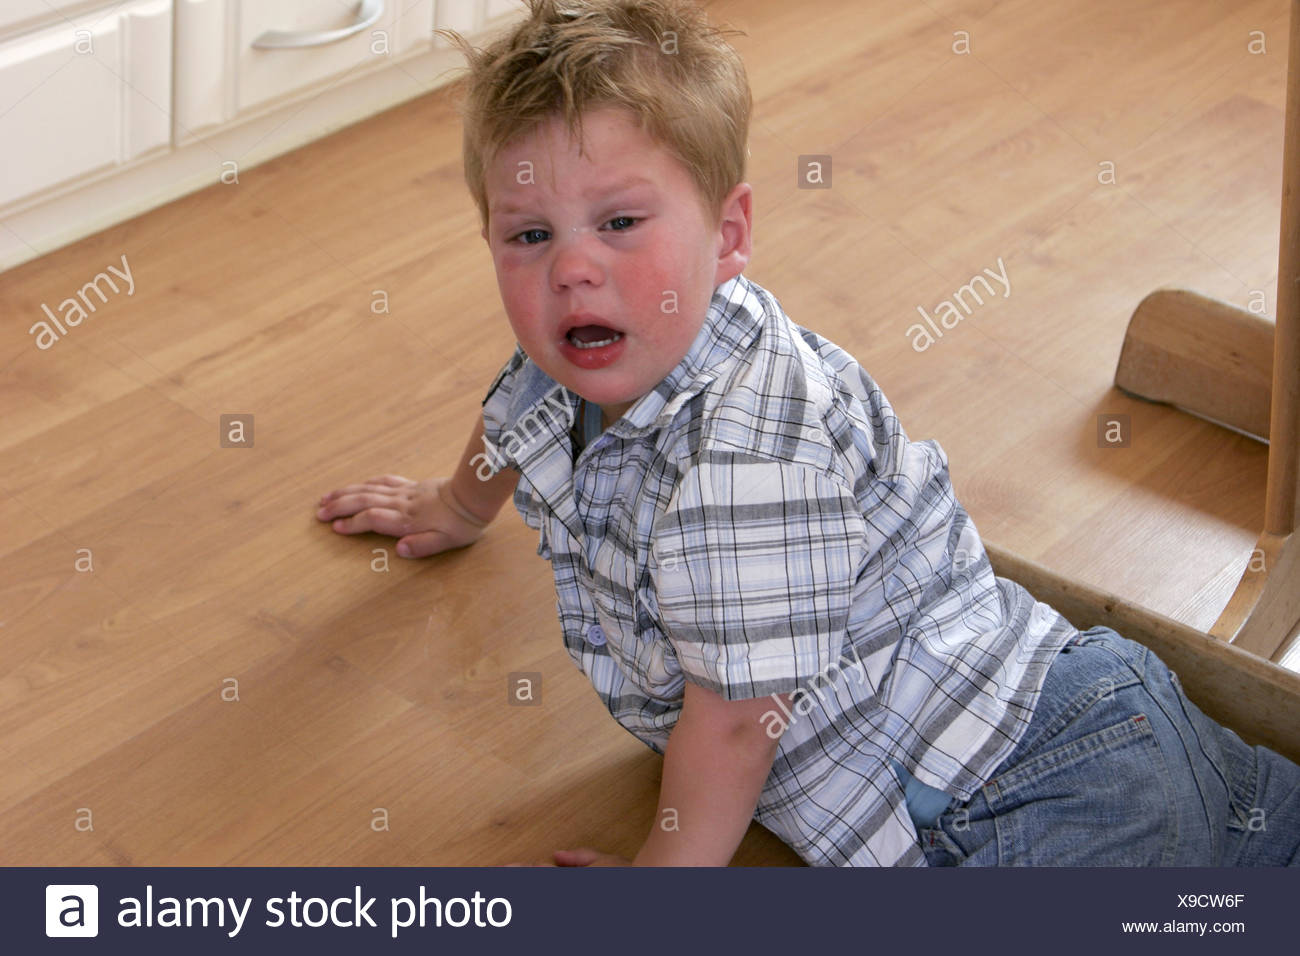 Little boy throwing a tantrum. The toddler child is weaning, whining and sobbing on the floor. - Stock Image